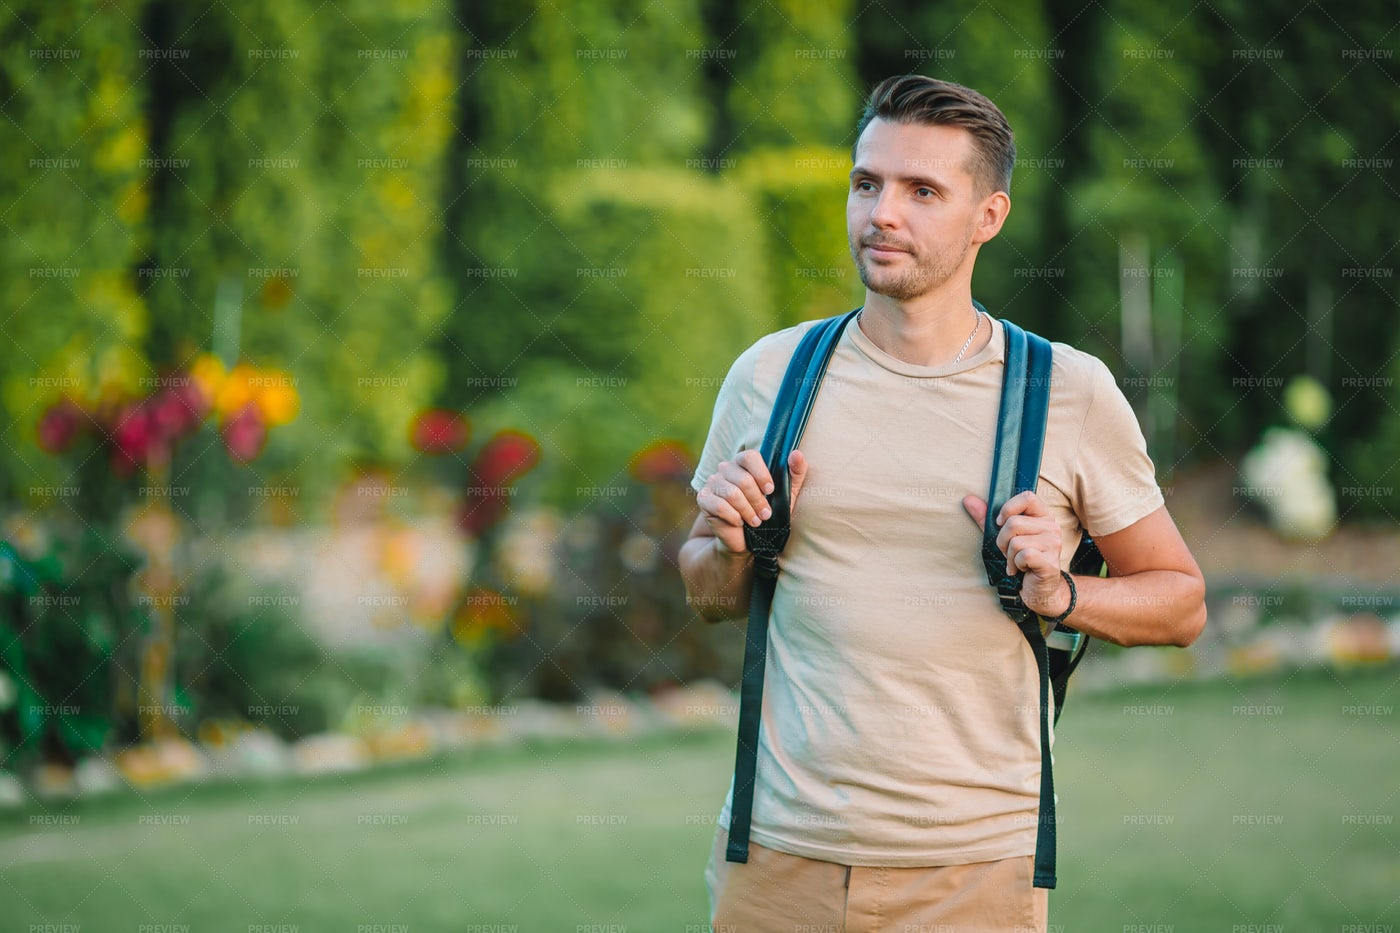 Wearing A Backpack Outdoors: Stock Photos